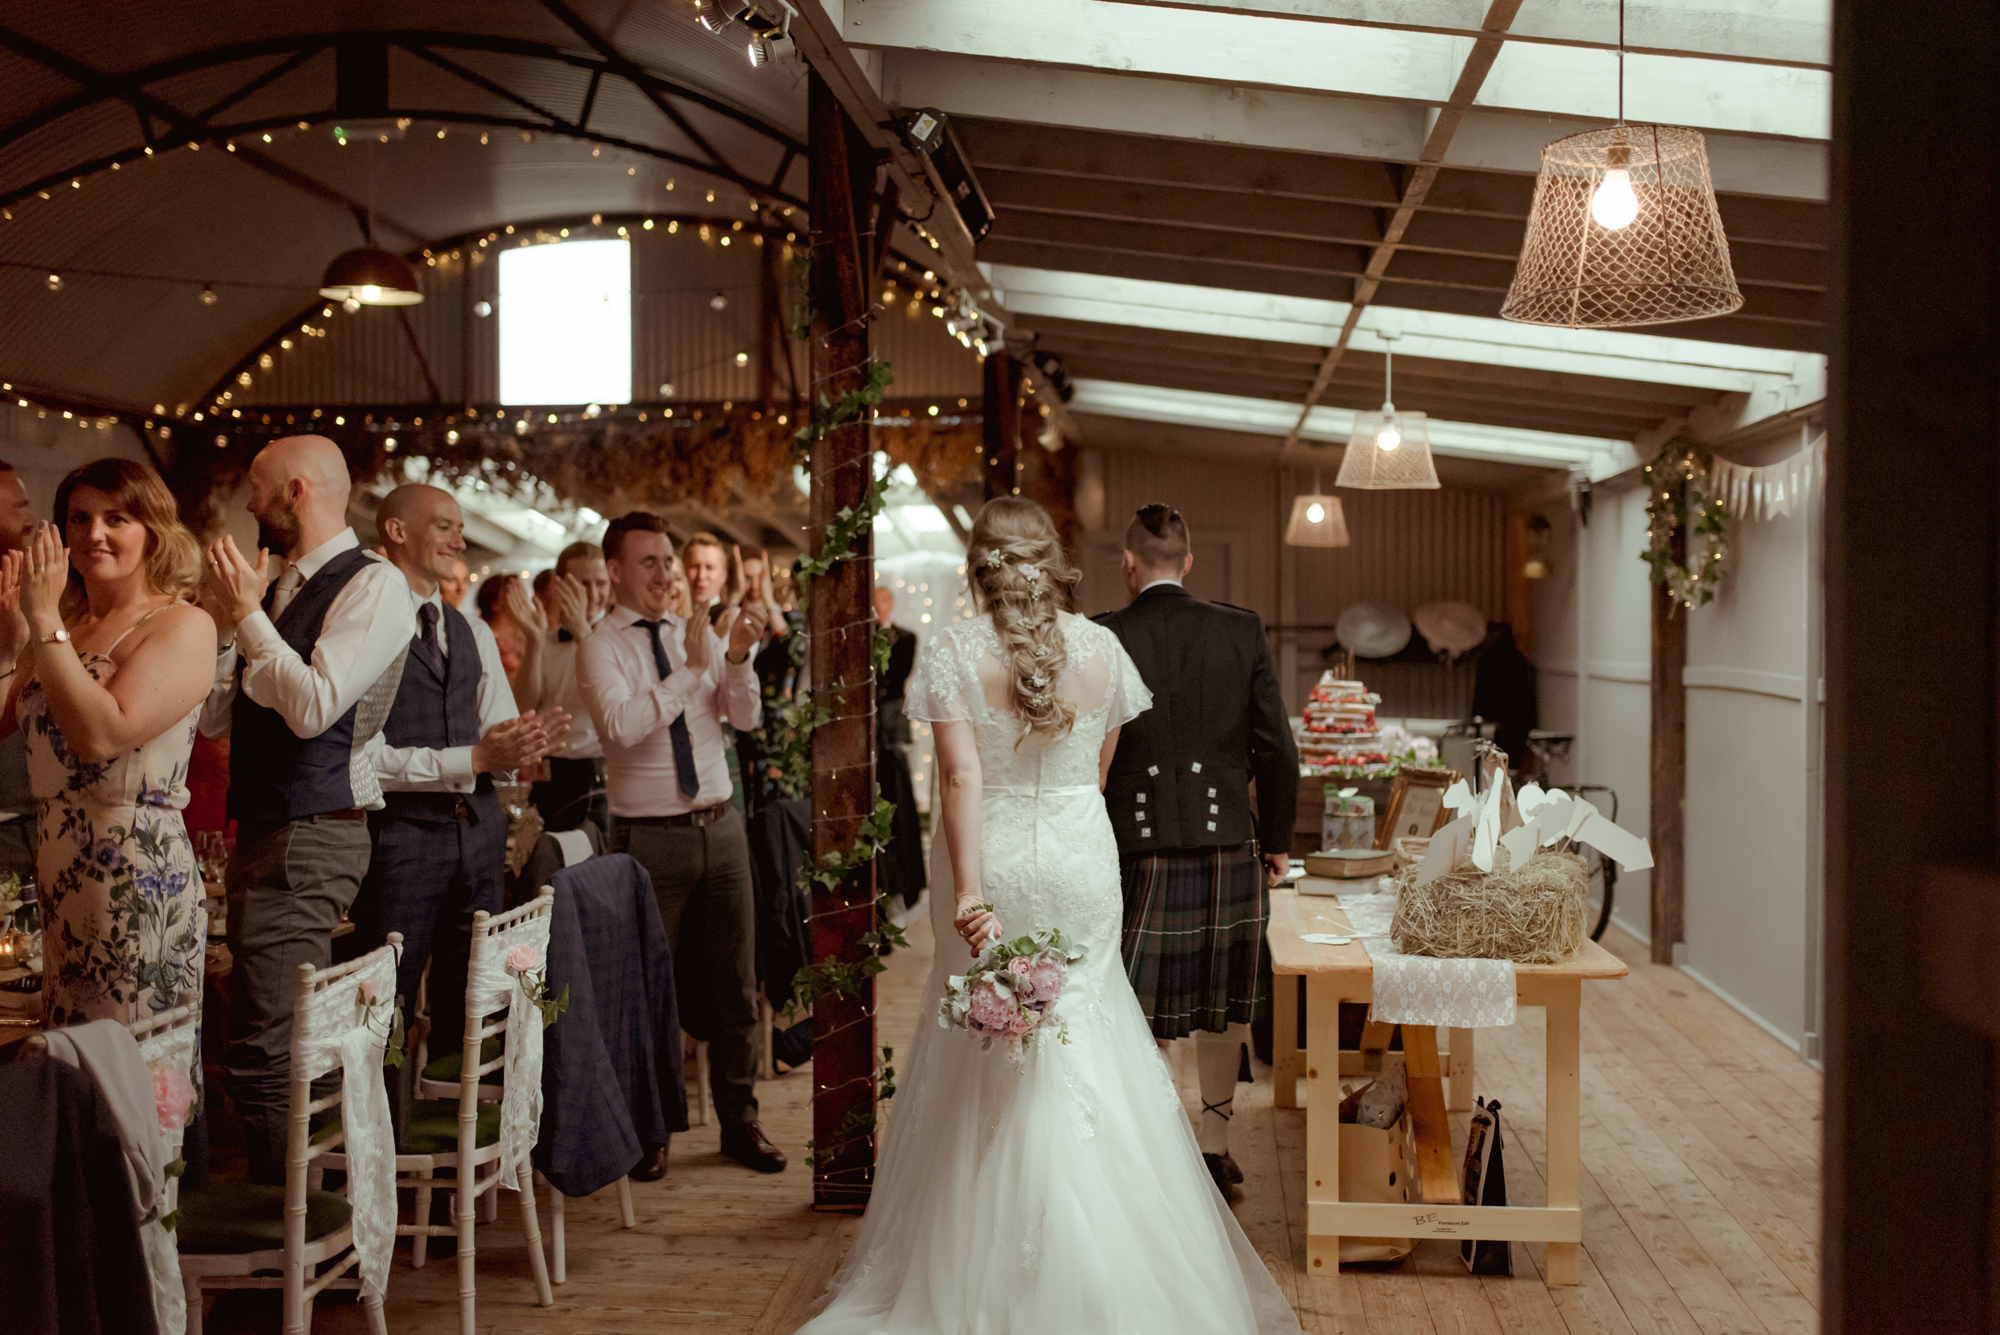 barn-wedding-venue-scotland-glasgow.jpg